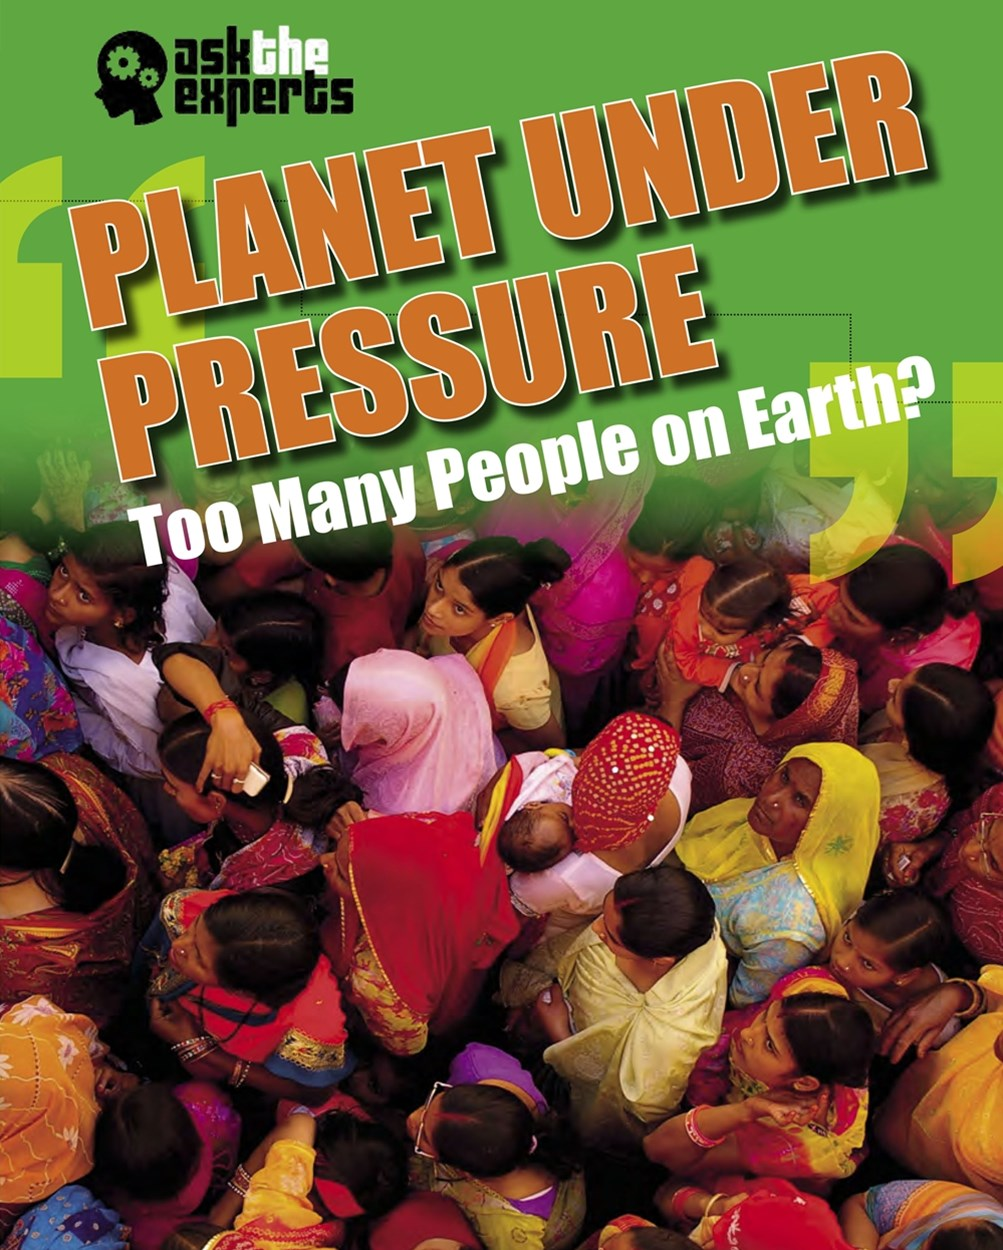 Ask the Experts: Planet Under Pressure: Too Many People on Earth?